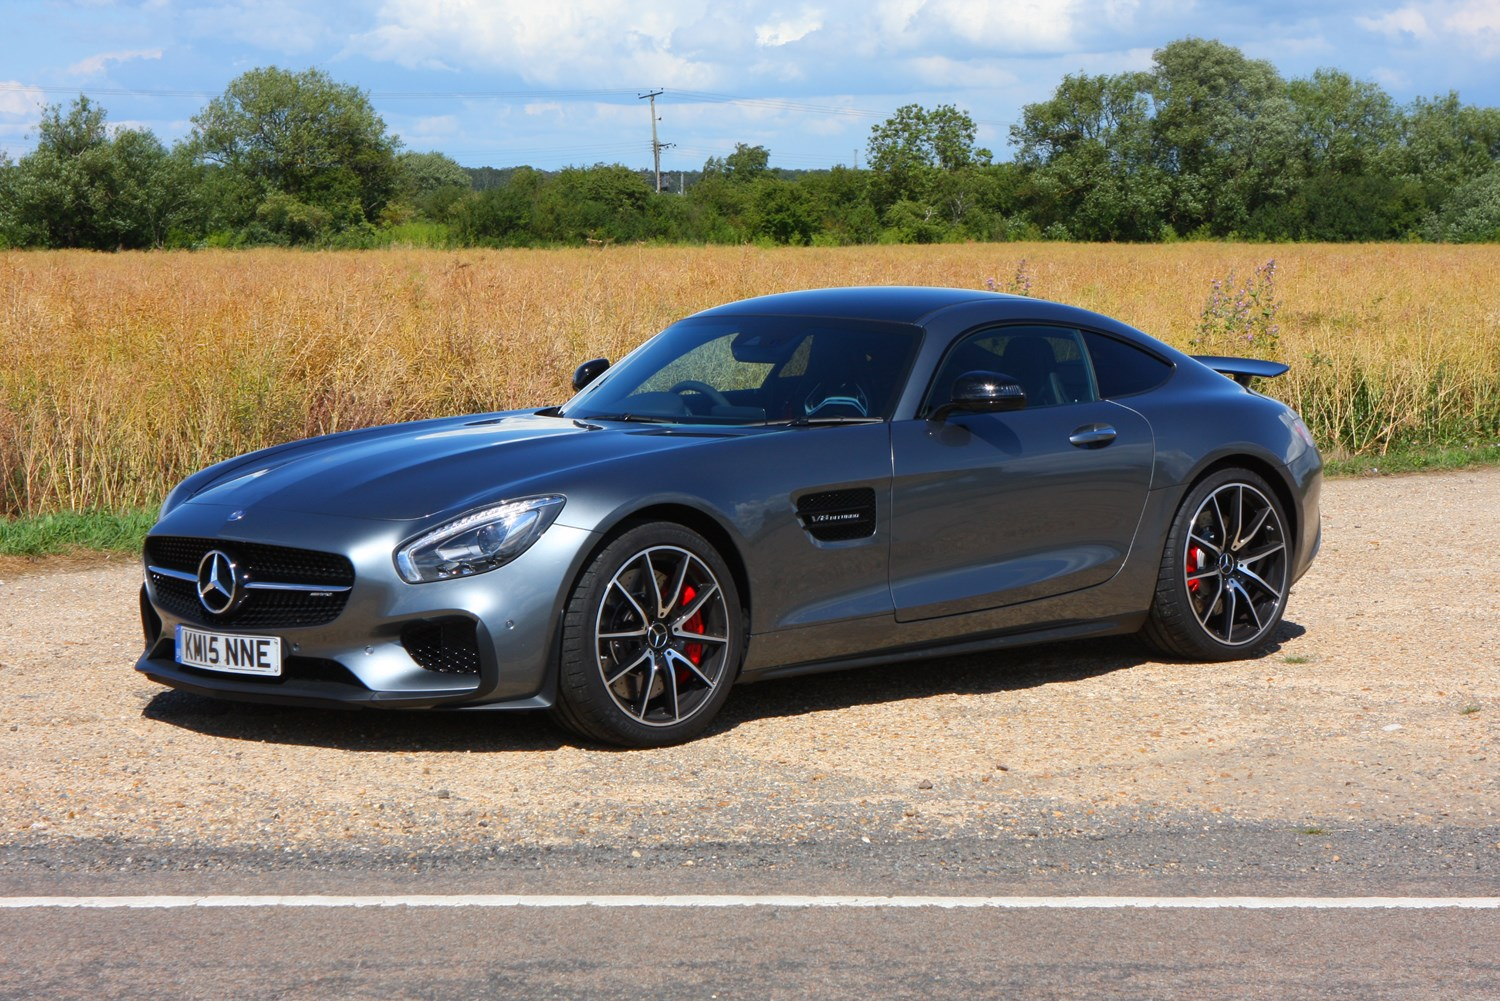 Mercedes benz amg gt coupe 2015 photos parkers for Mercedes benz amg gt coupe price